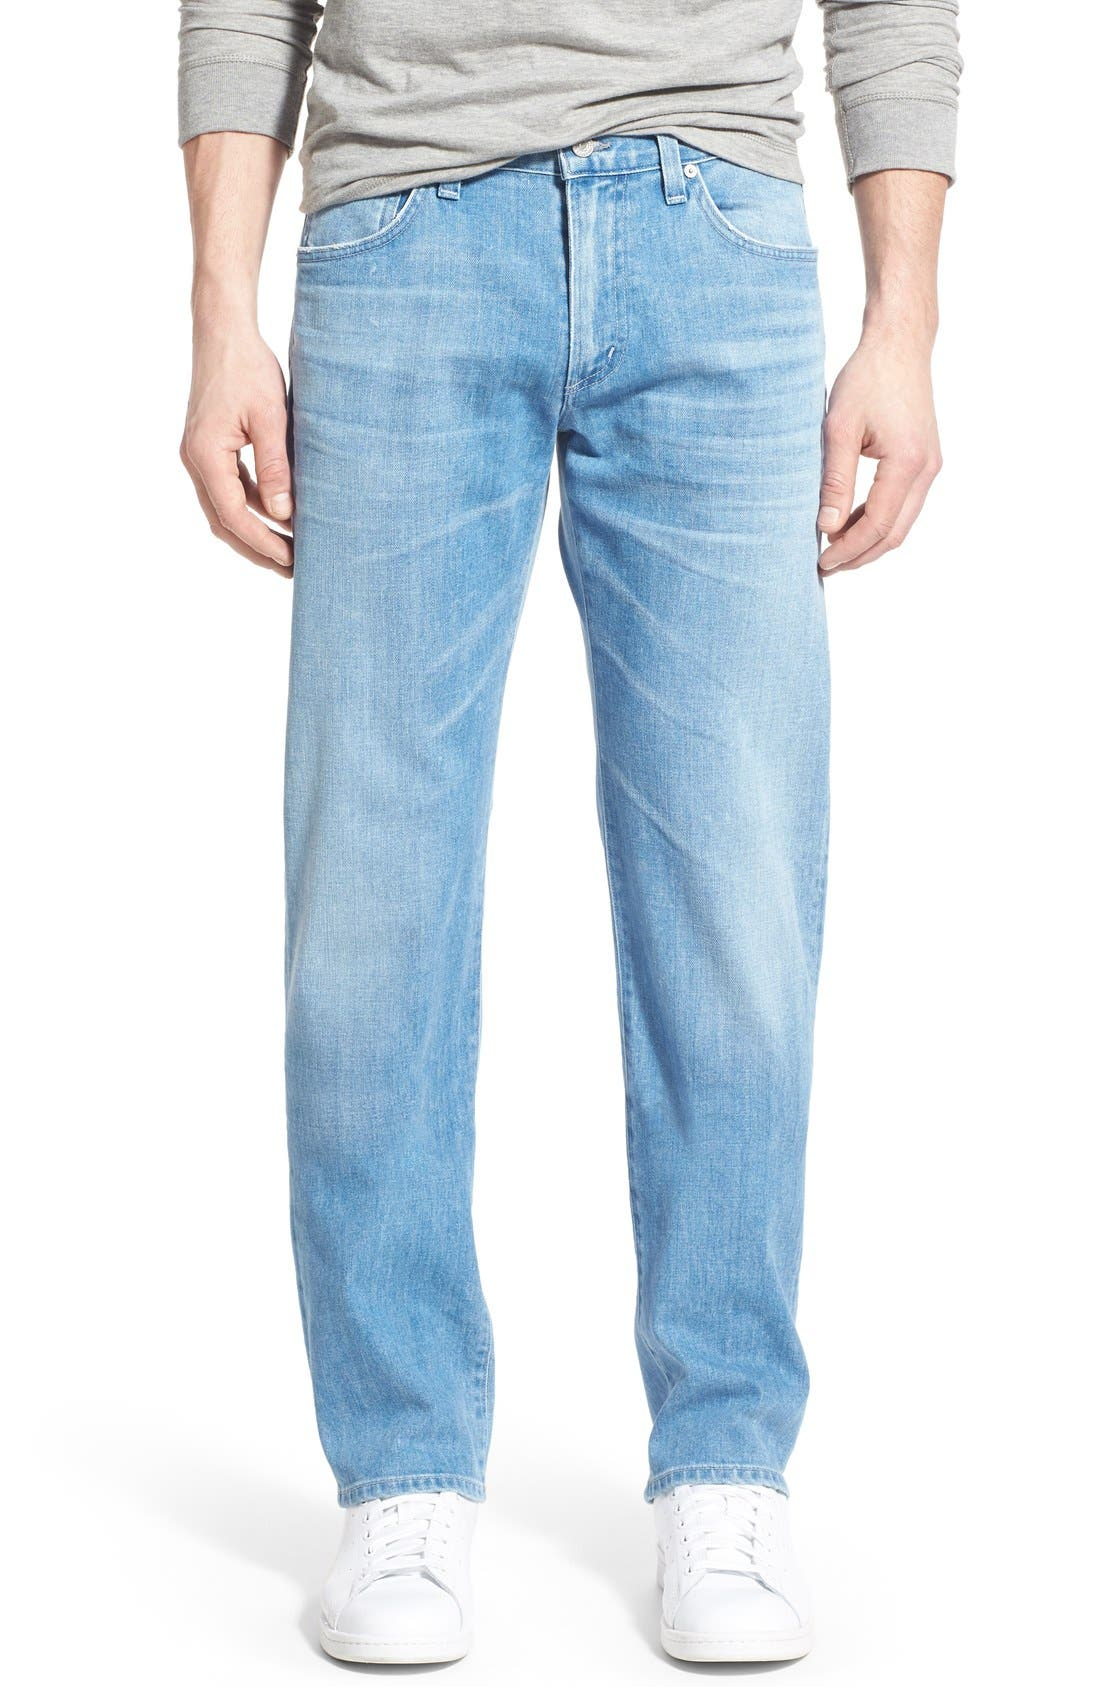 'Sid' Straight Leg Jeans,                         Main,                         color, Rogue